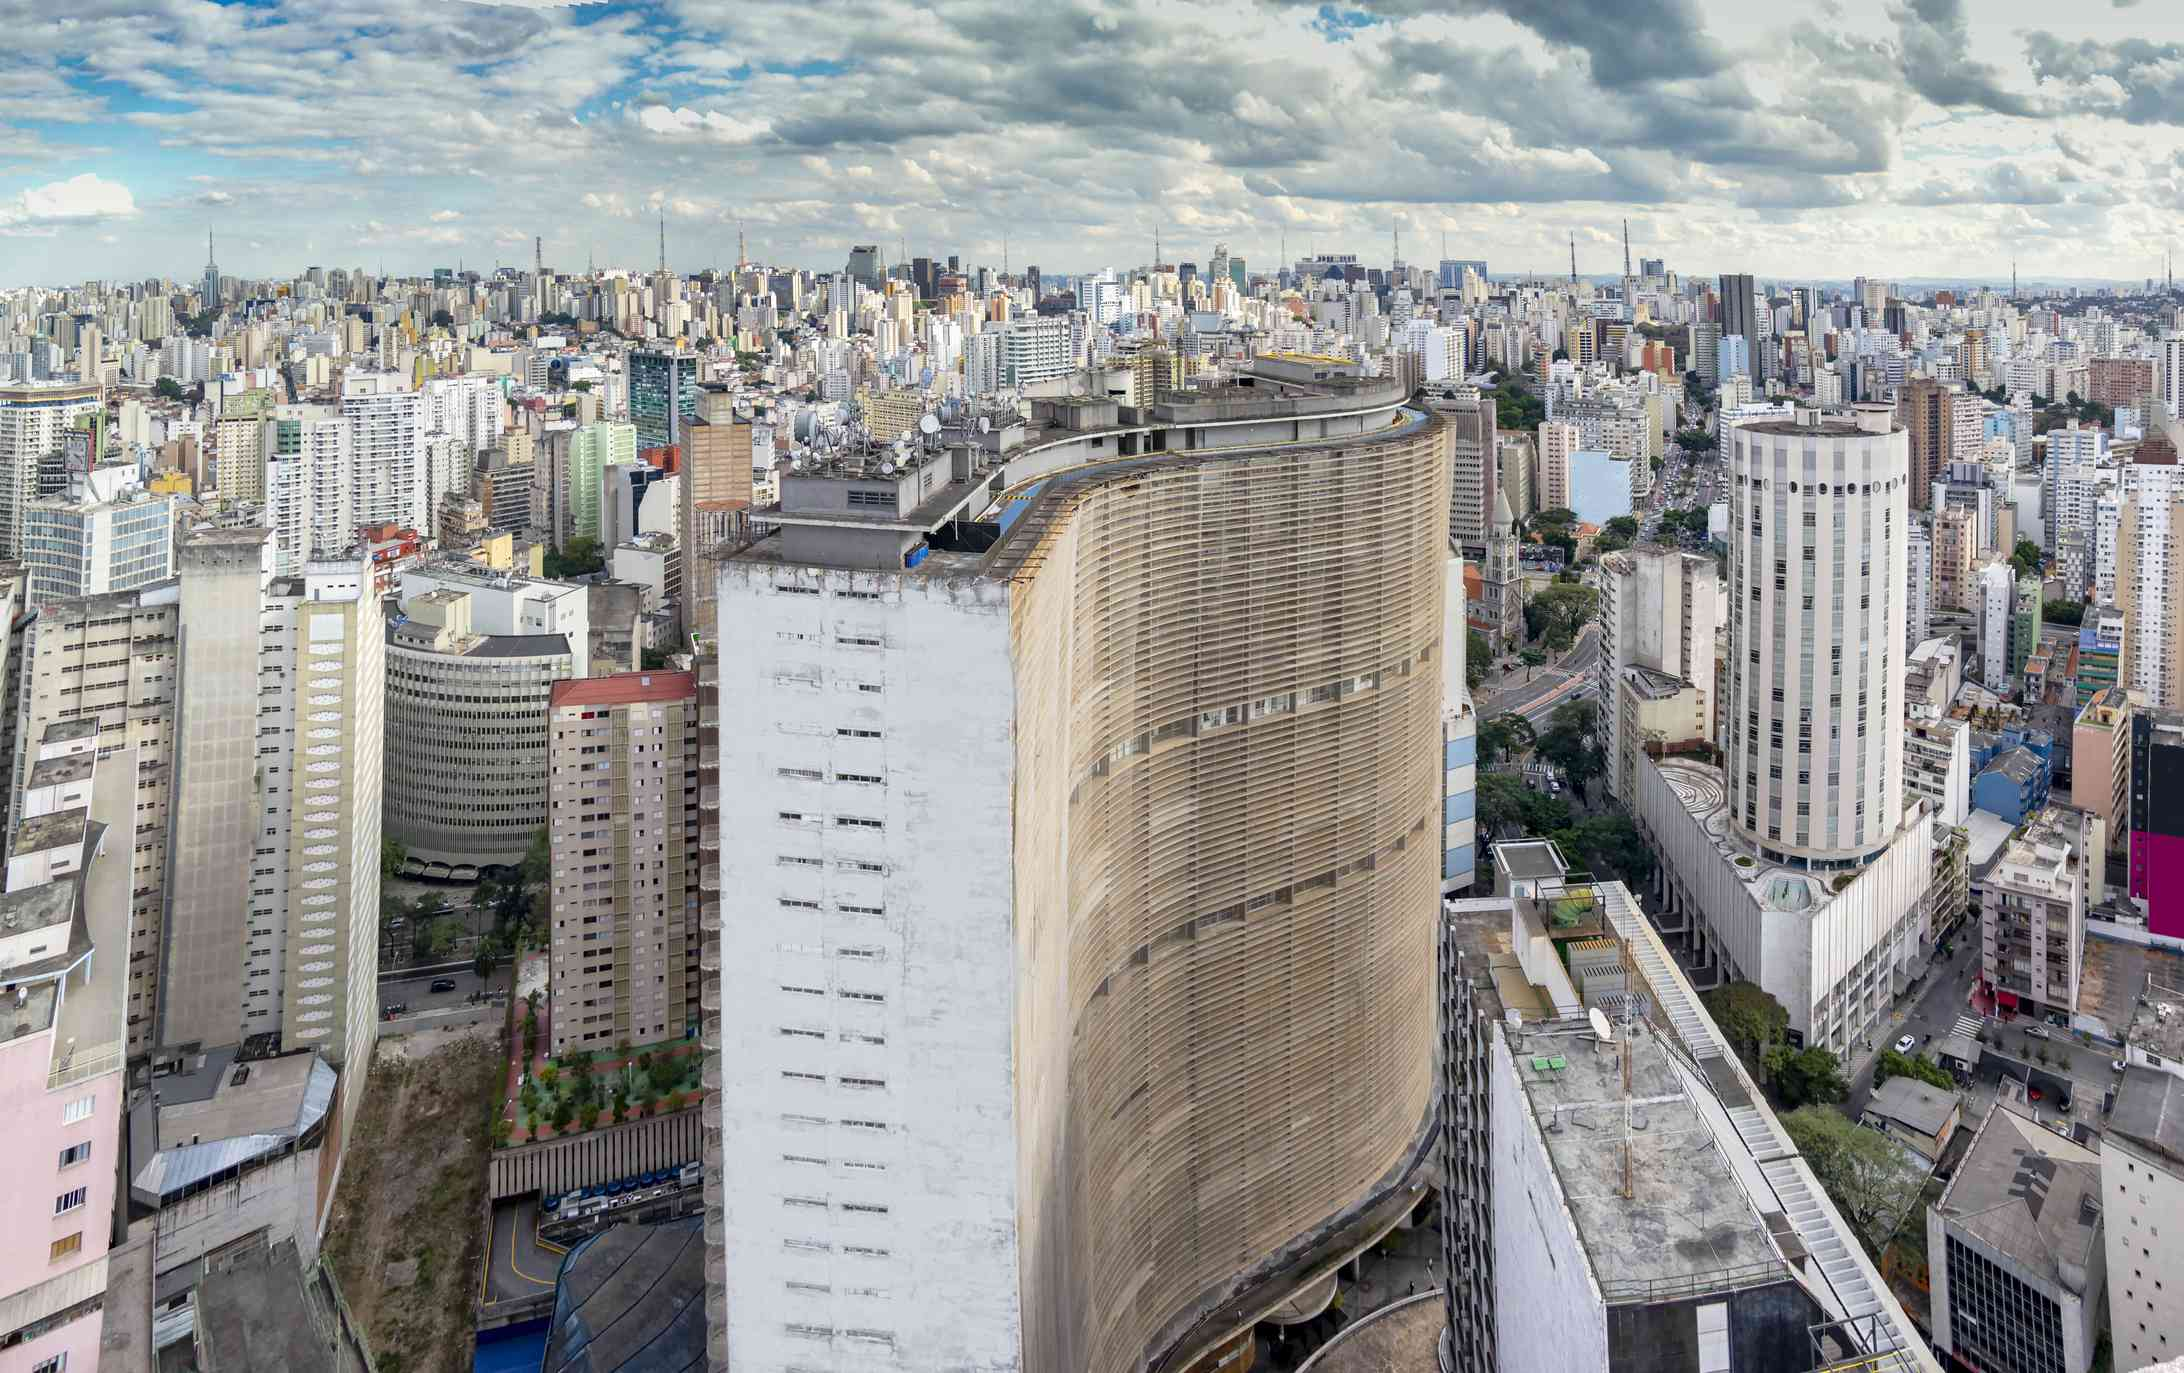 aerial view of Sao Paulo's downtown